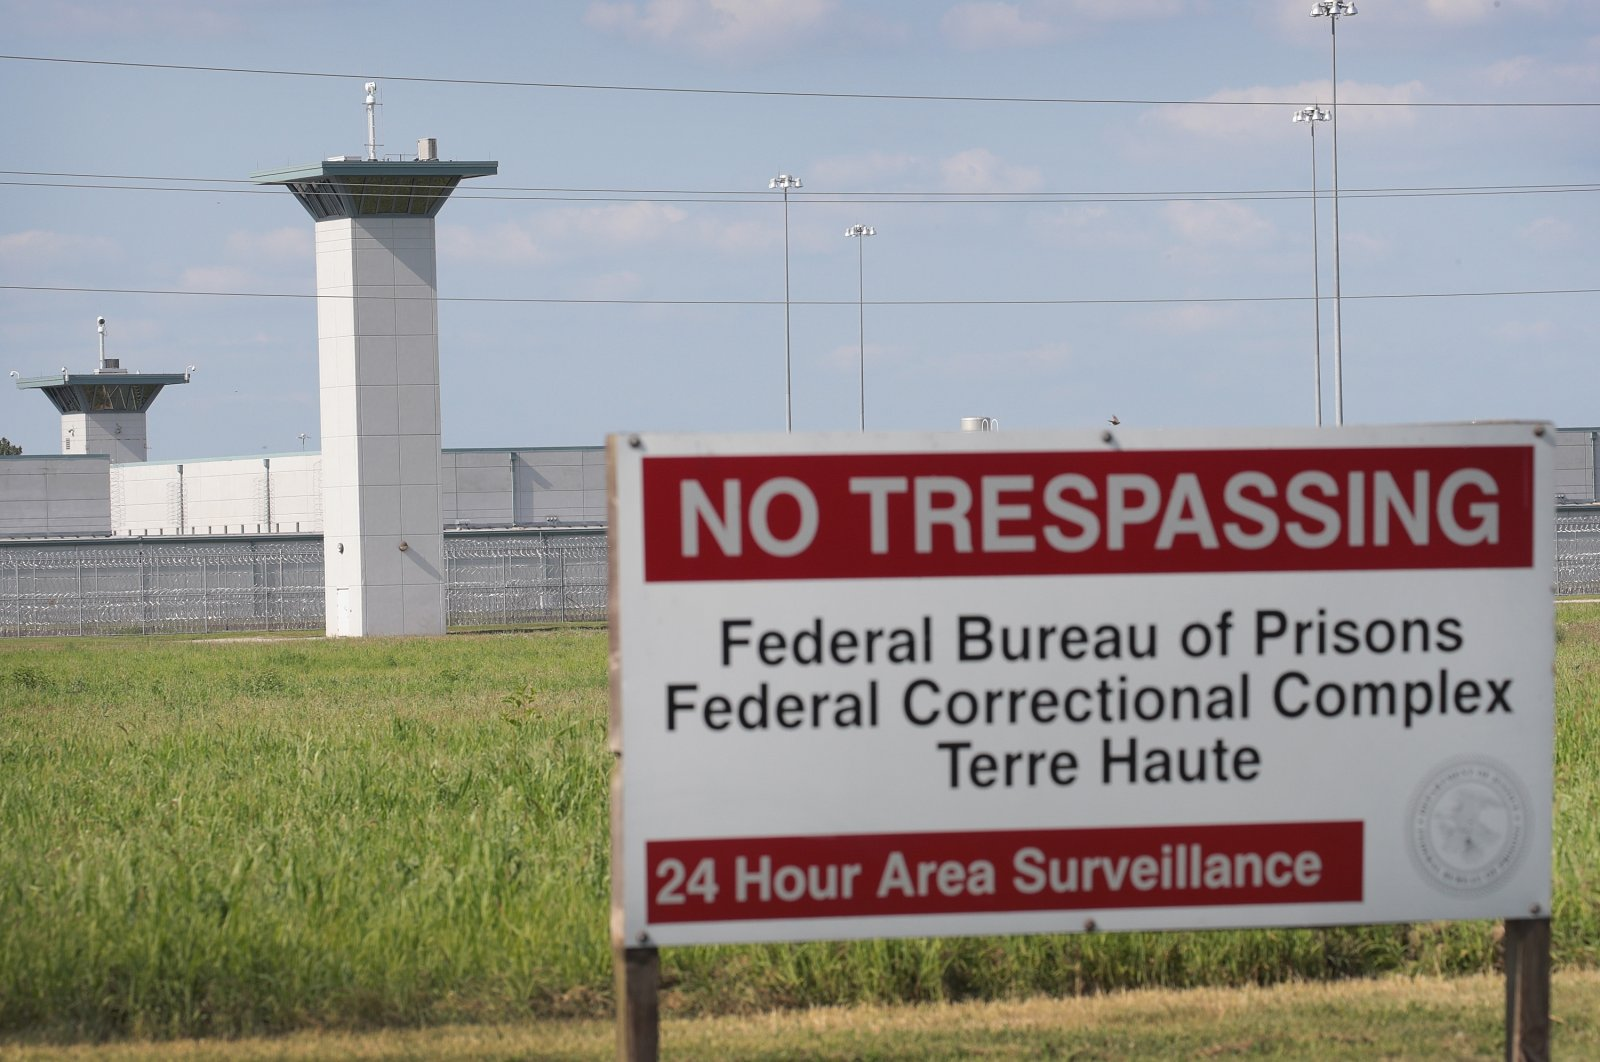 A sign warns trespassers at the Federal Correctional Complex Terre Haute, in Terre Haute, Indiana, July 25, 2019. (AFP Photo)